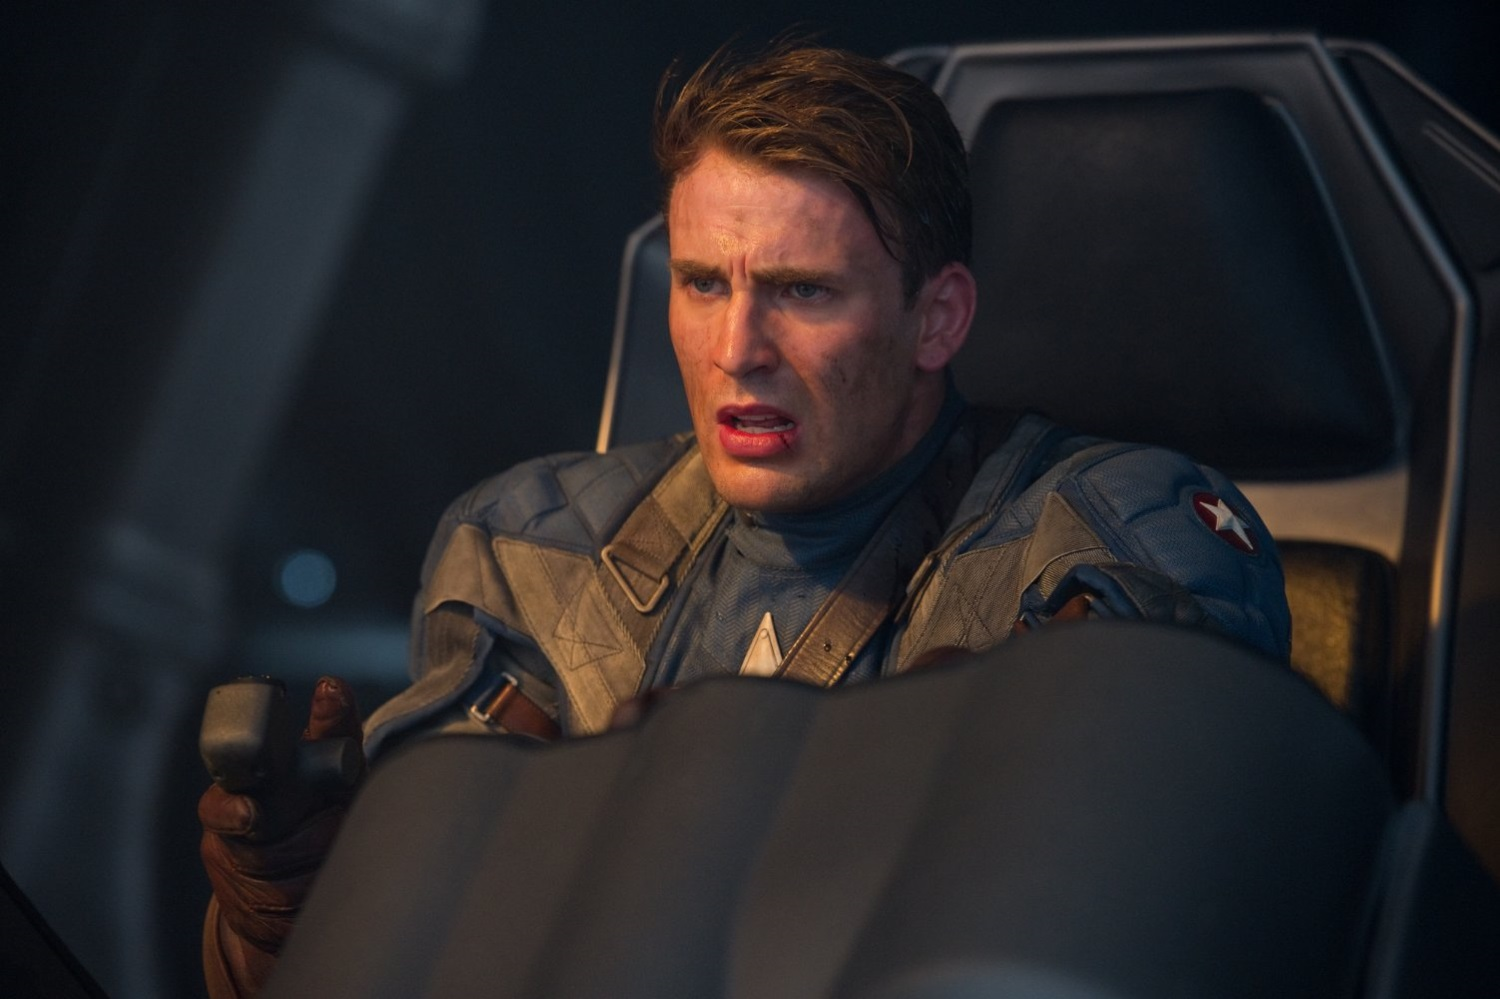 Steve Rogers Captain America Captain America The First Avenger 2011 Celebrity Gossip And Movie News